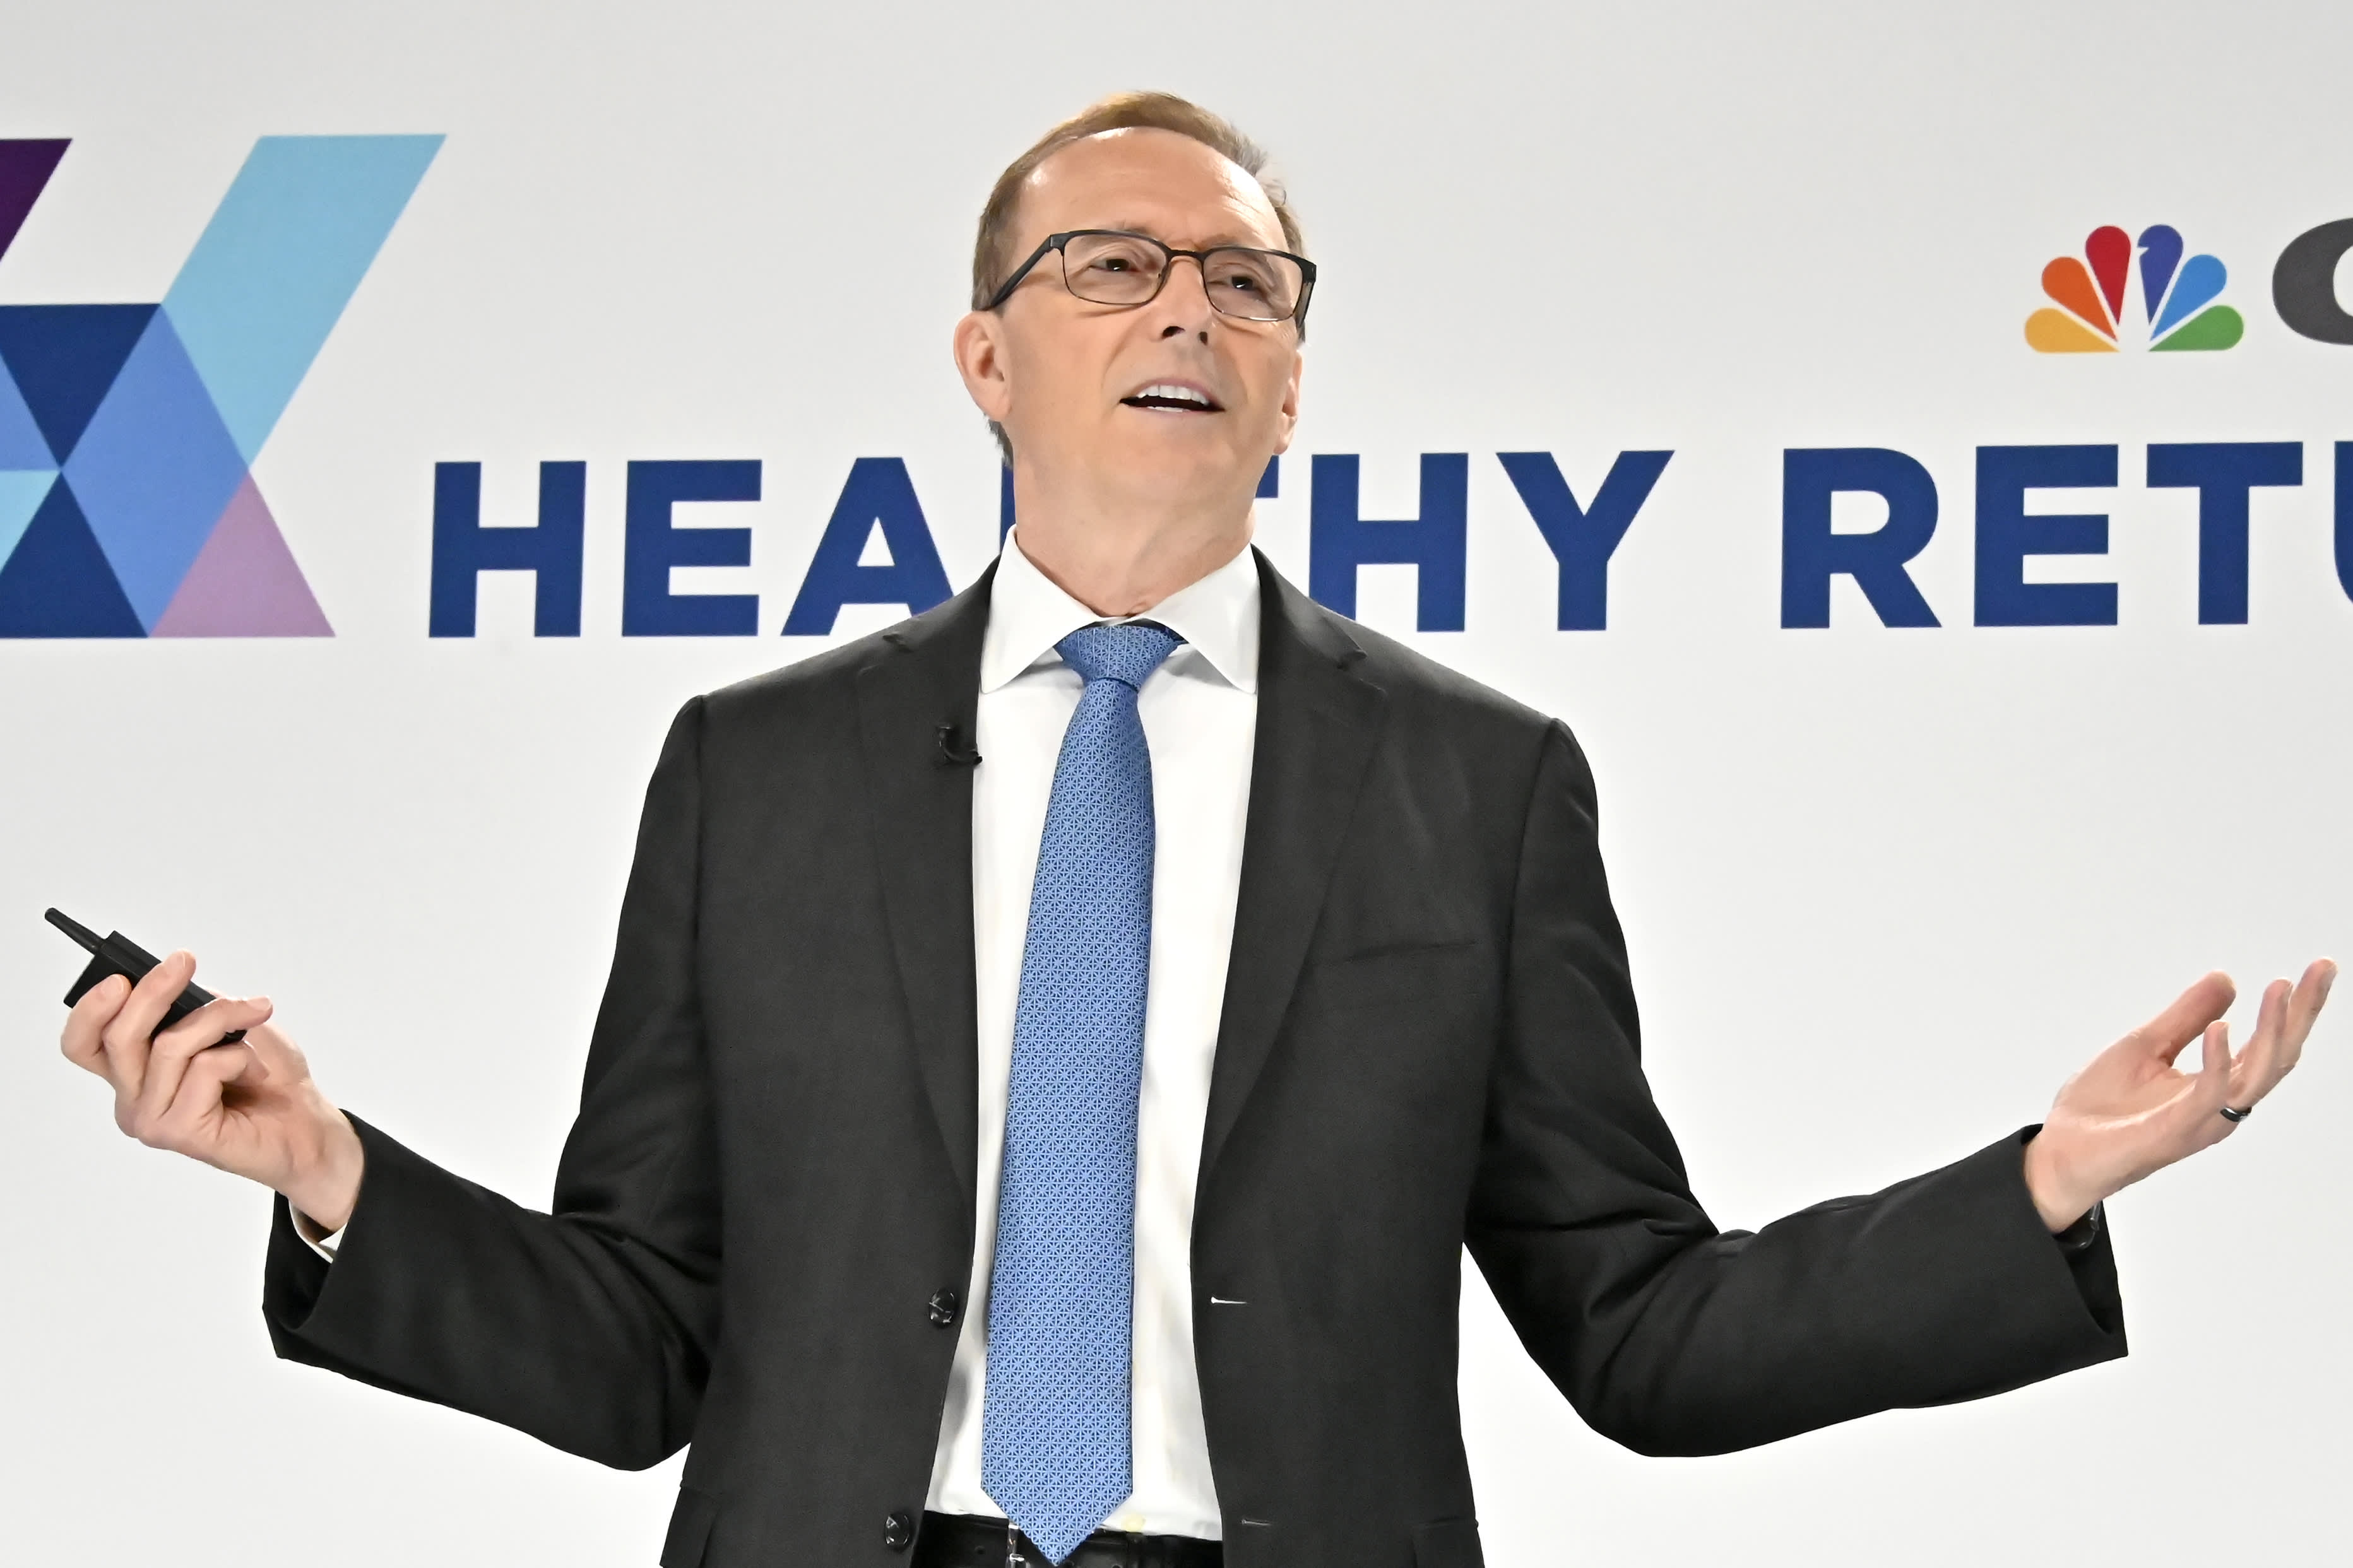 Dr. Ed Ellison, speaking at CNBC's Healthy Returns conference in New York on May 21, 2019.